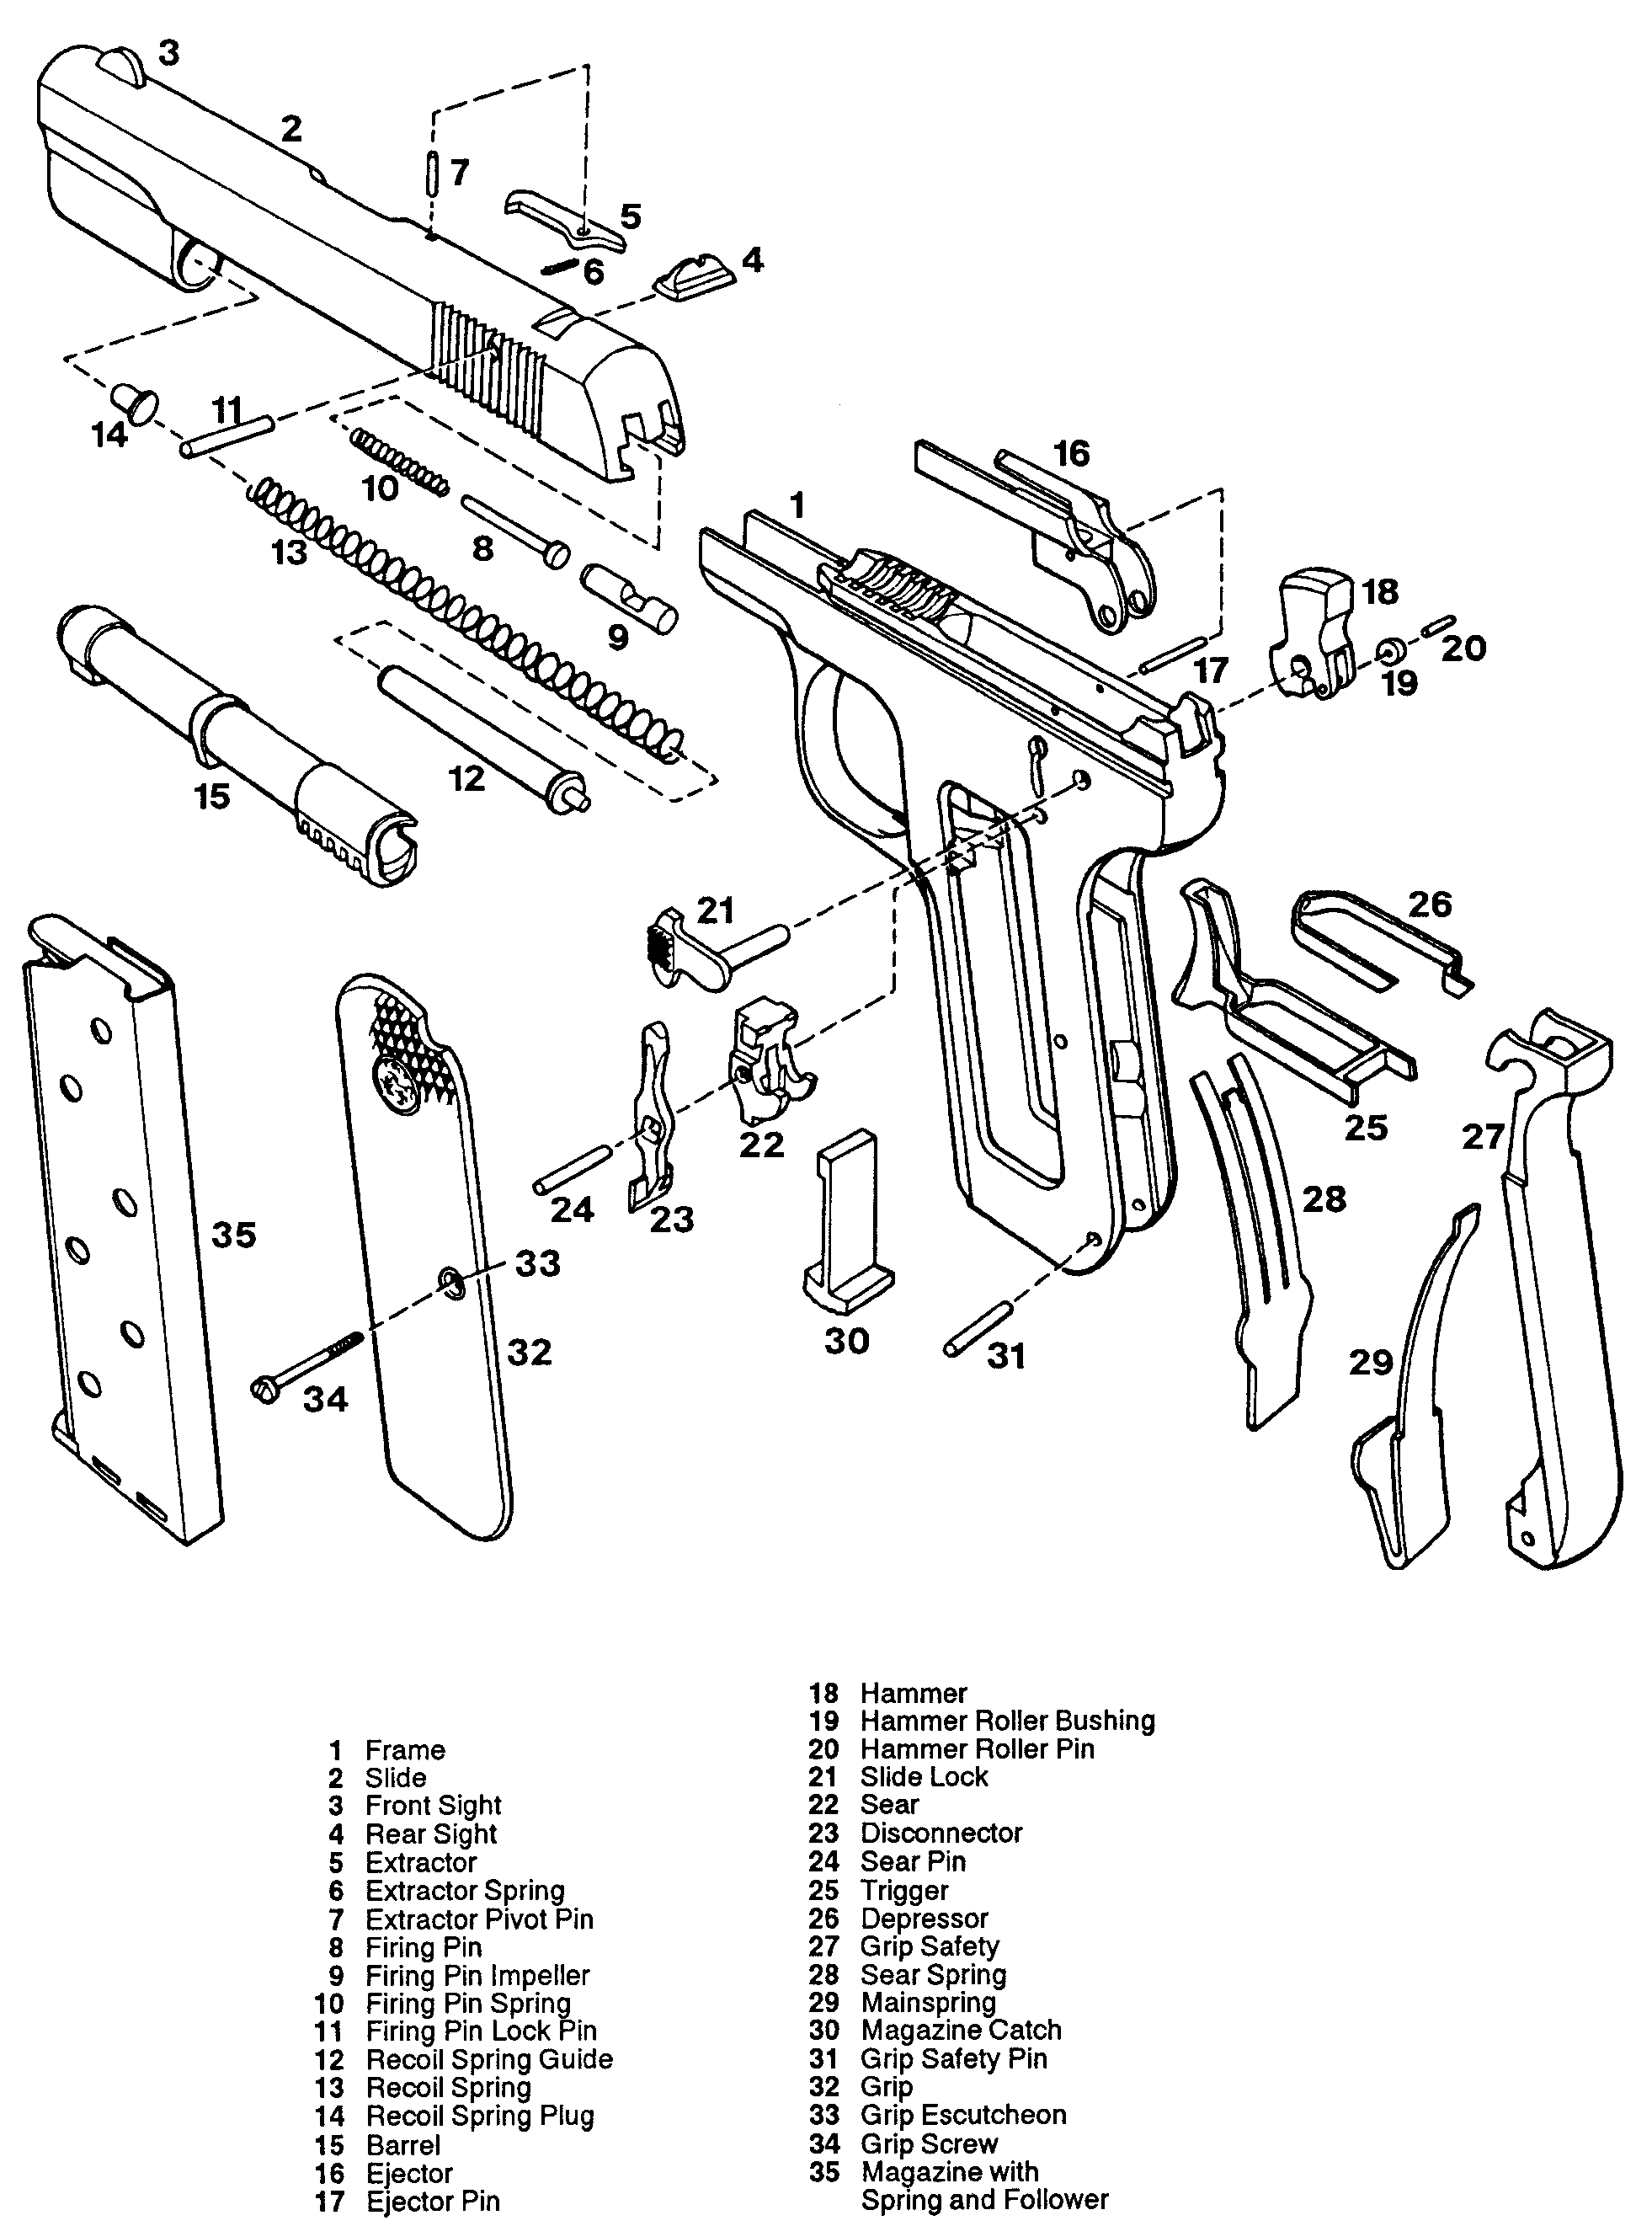 Pleasant Kimber 1911 Parts Diagram Search Electric Mx Tl Wiring 101 Orsalhahutechinfo